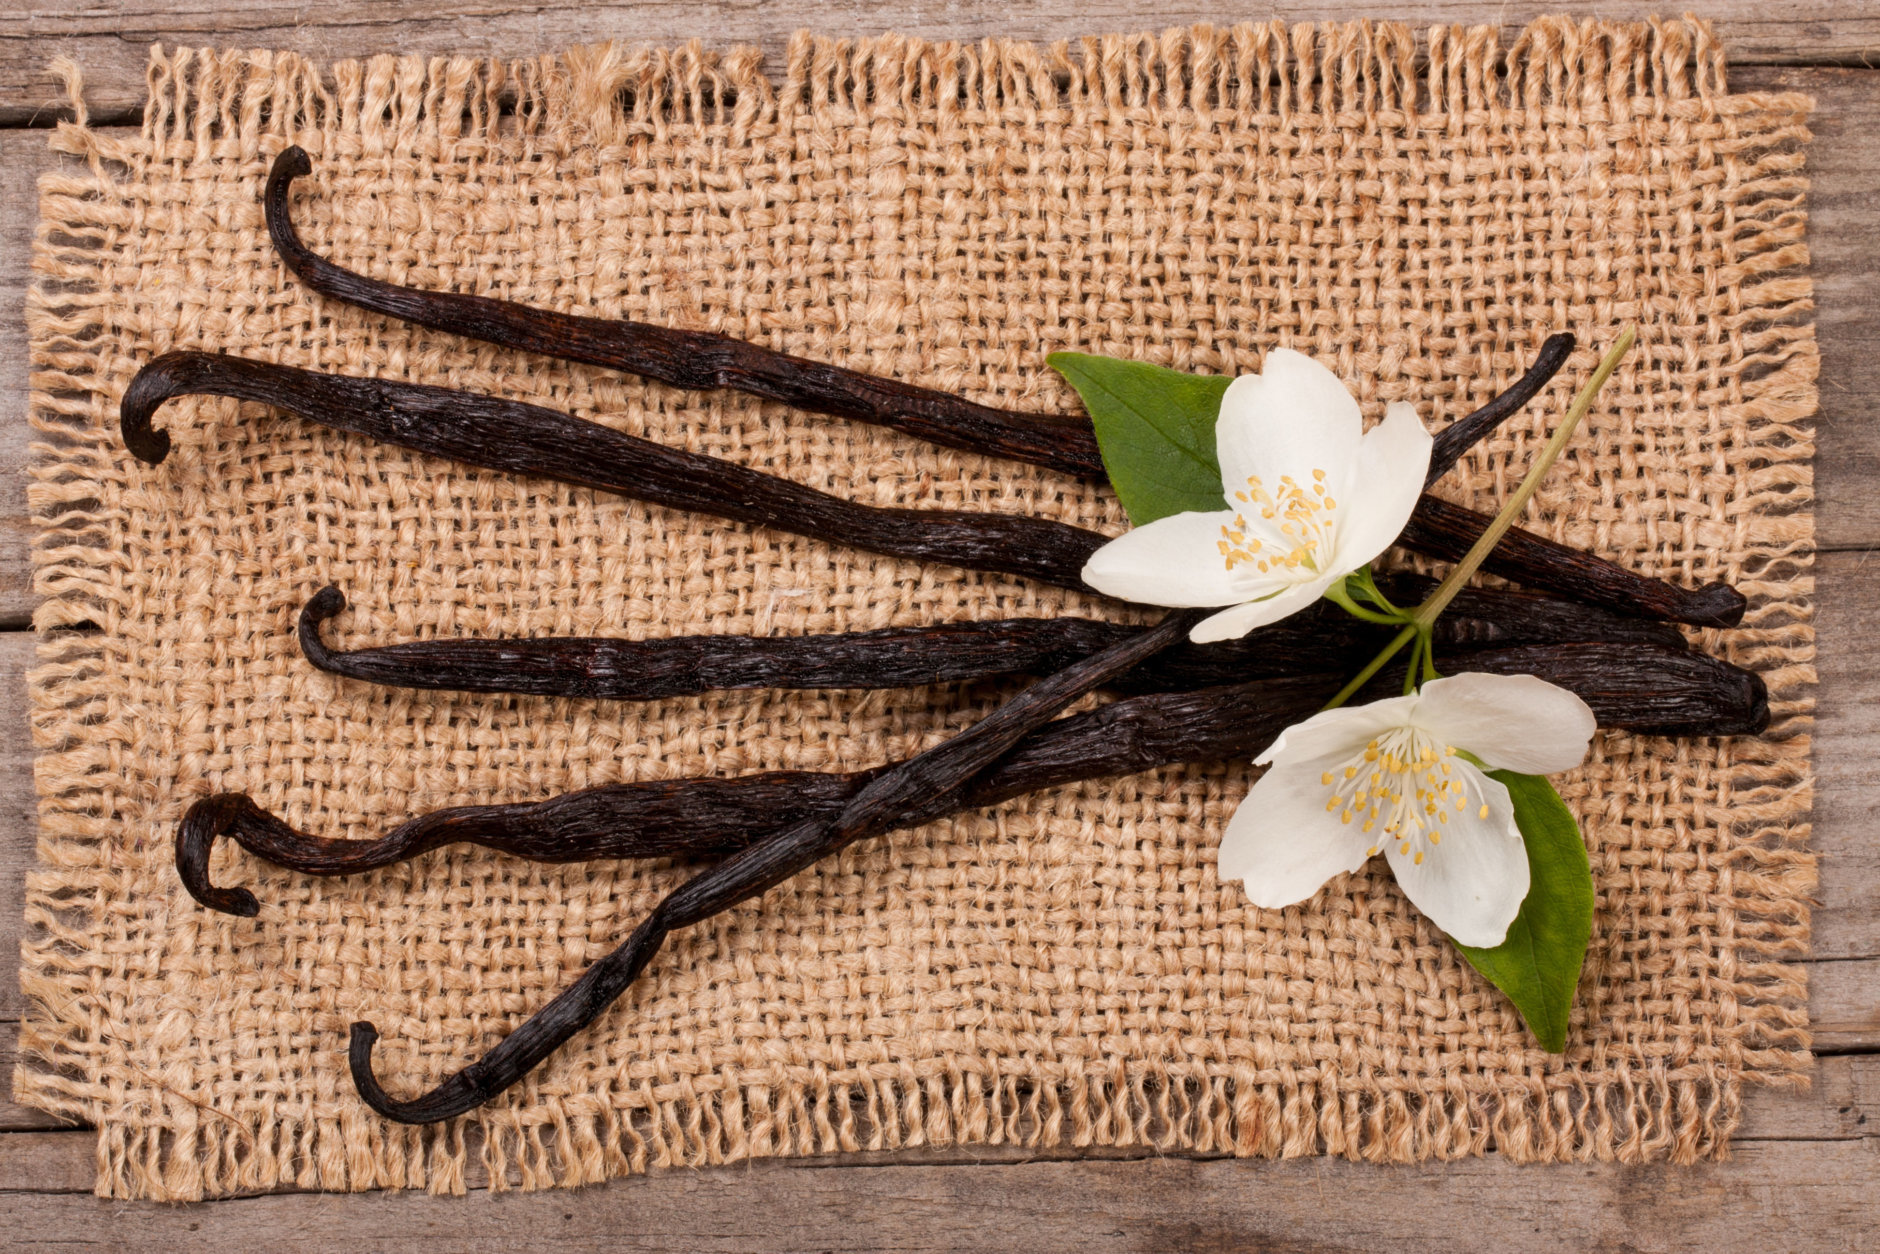 Vanilla sticks with flower and leaf on sackcloth.